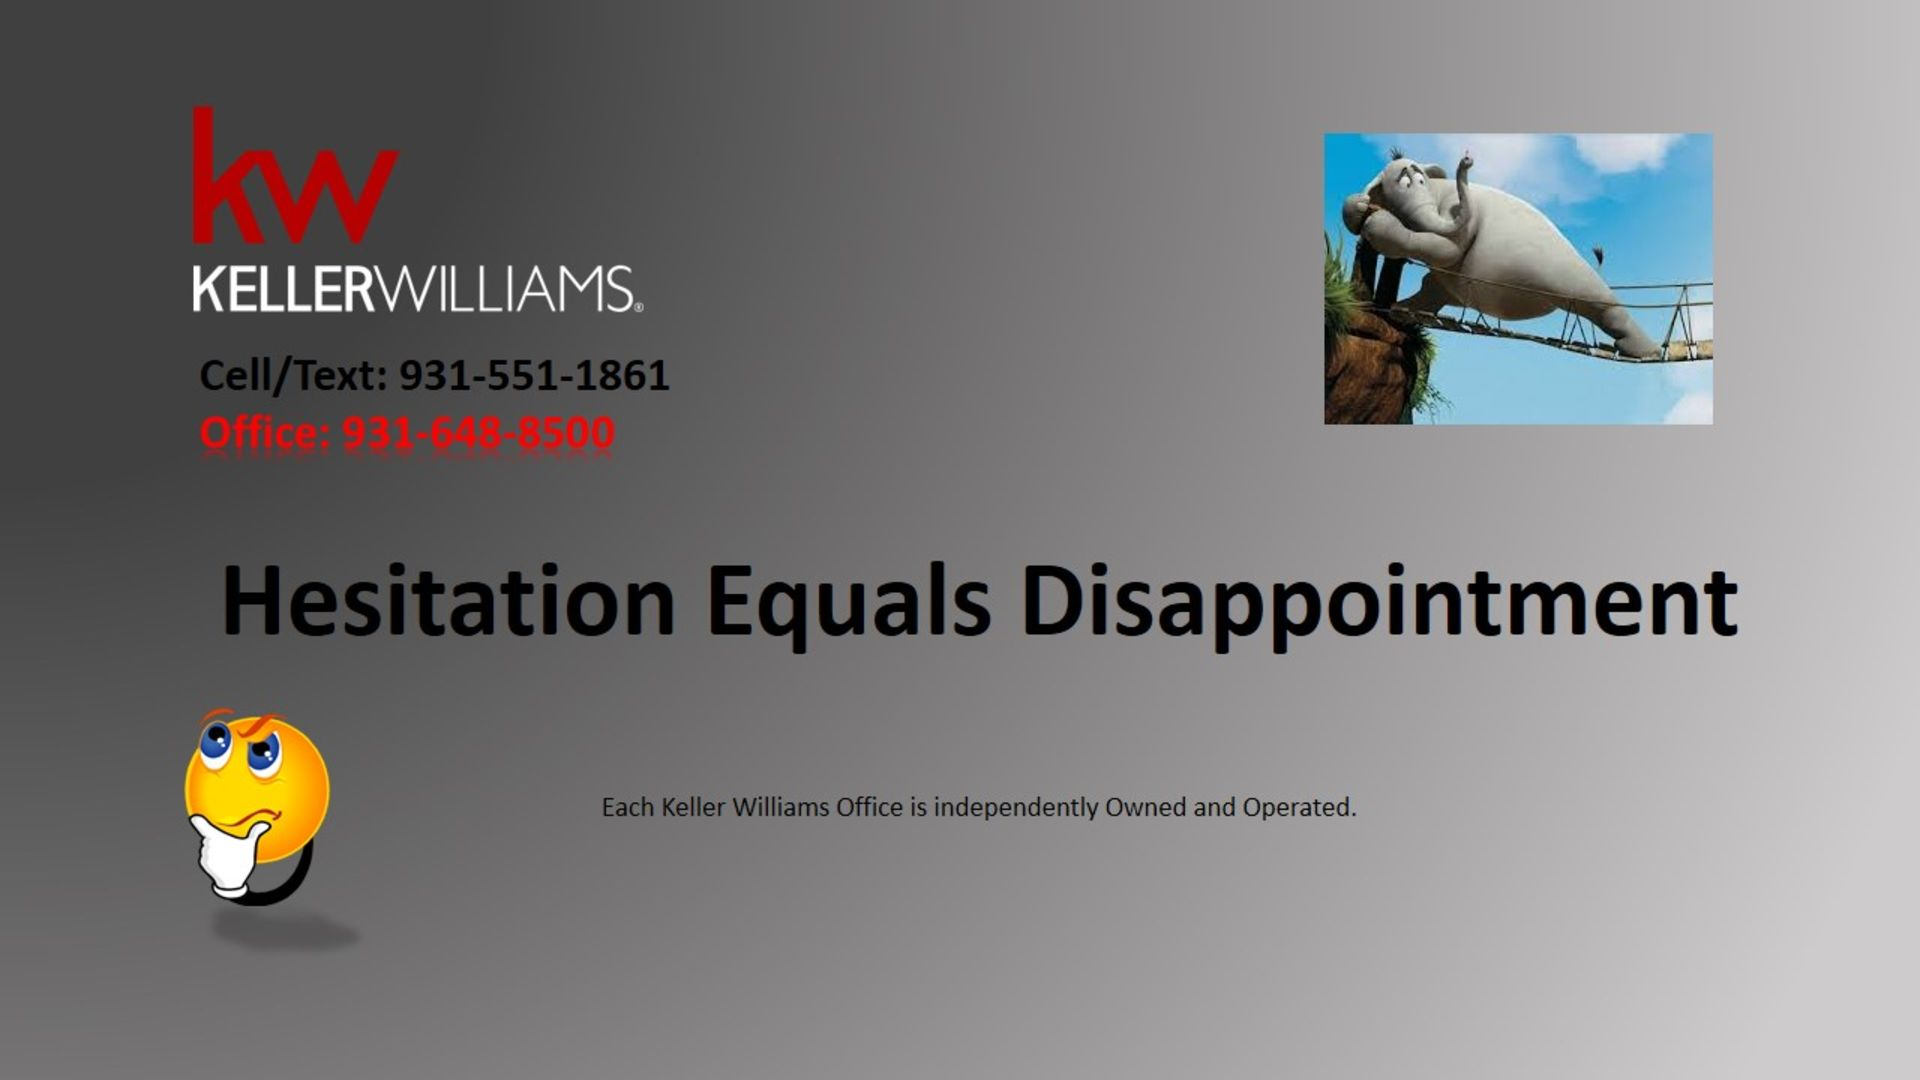 Hesitation Equals Disappointment